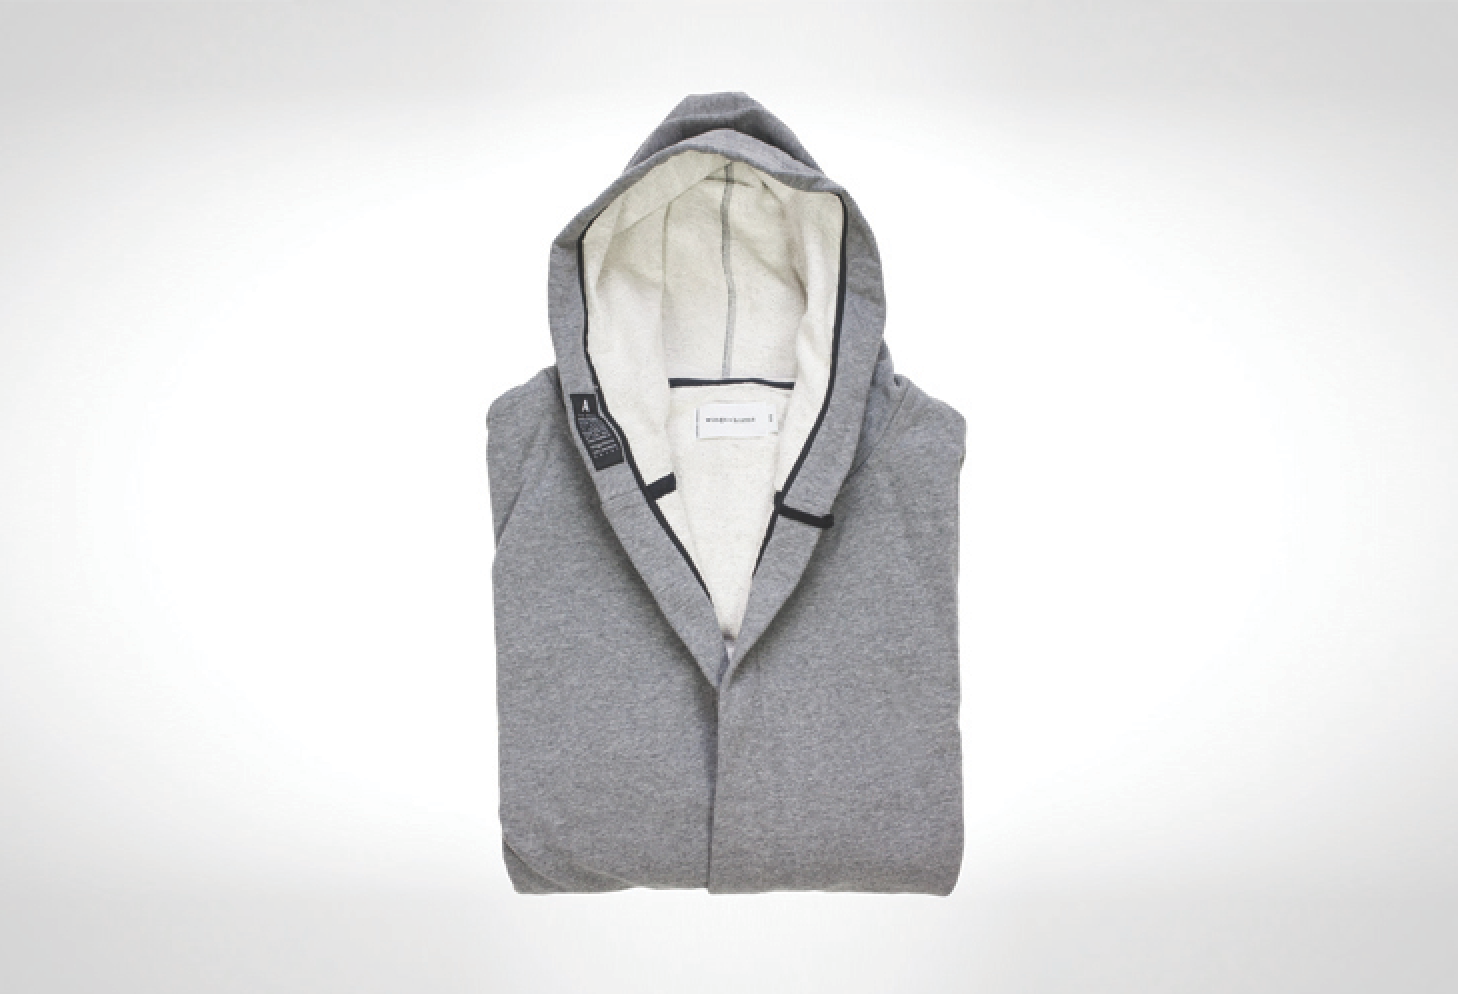 wings and horns ace hotel robe remodelista 1 24